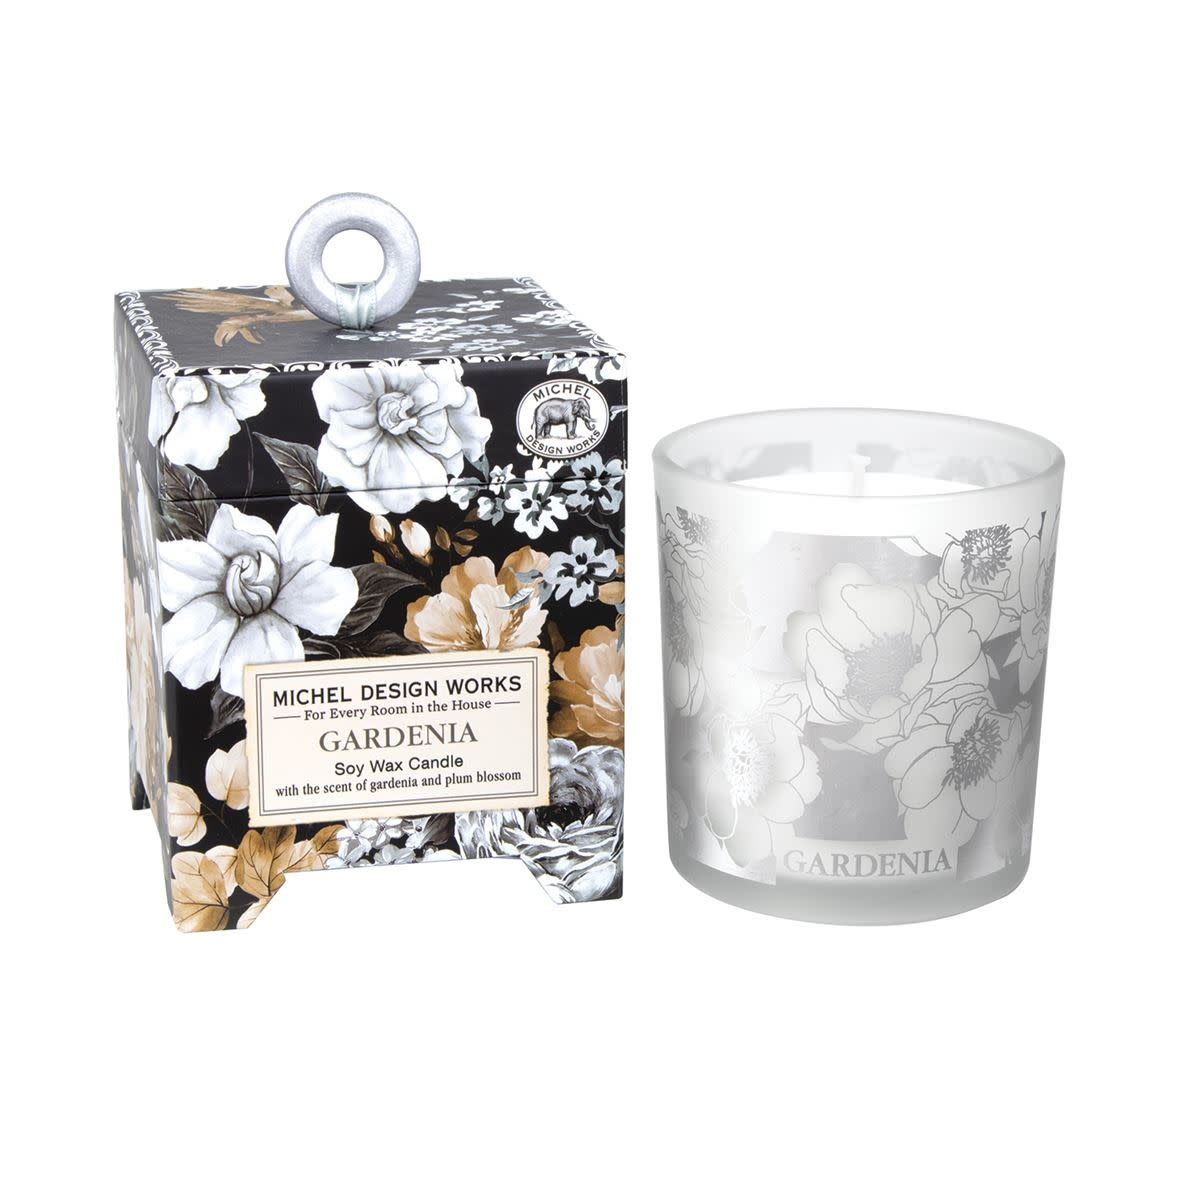 MICHEL DESIGN WORKS GARDENIA  SOY CANDLE WAX CANDLE